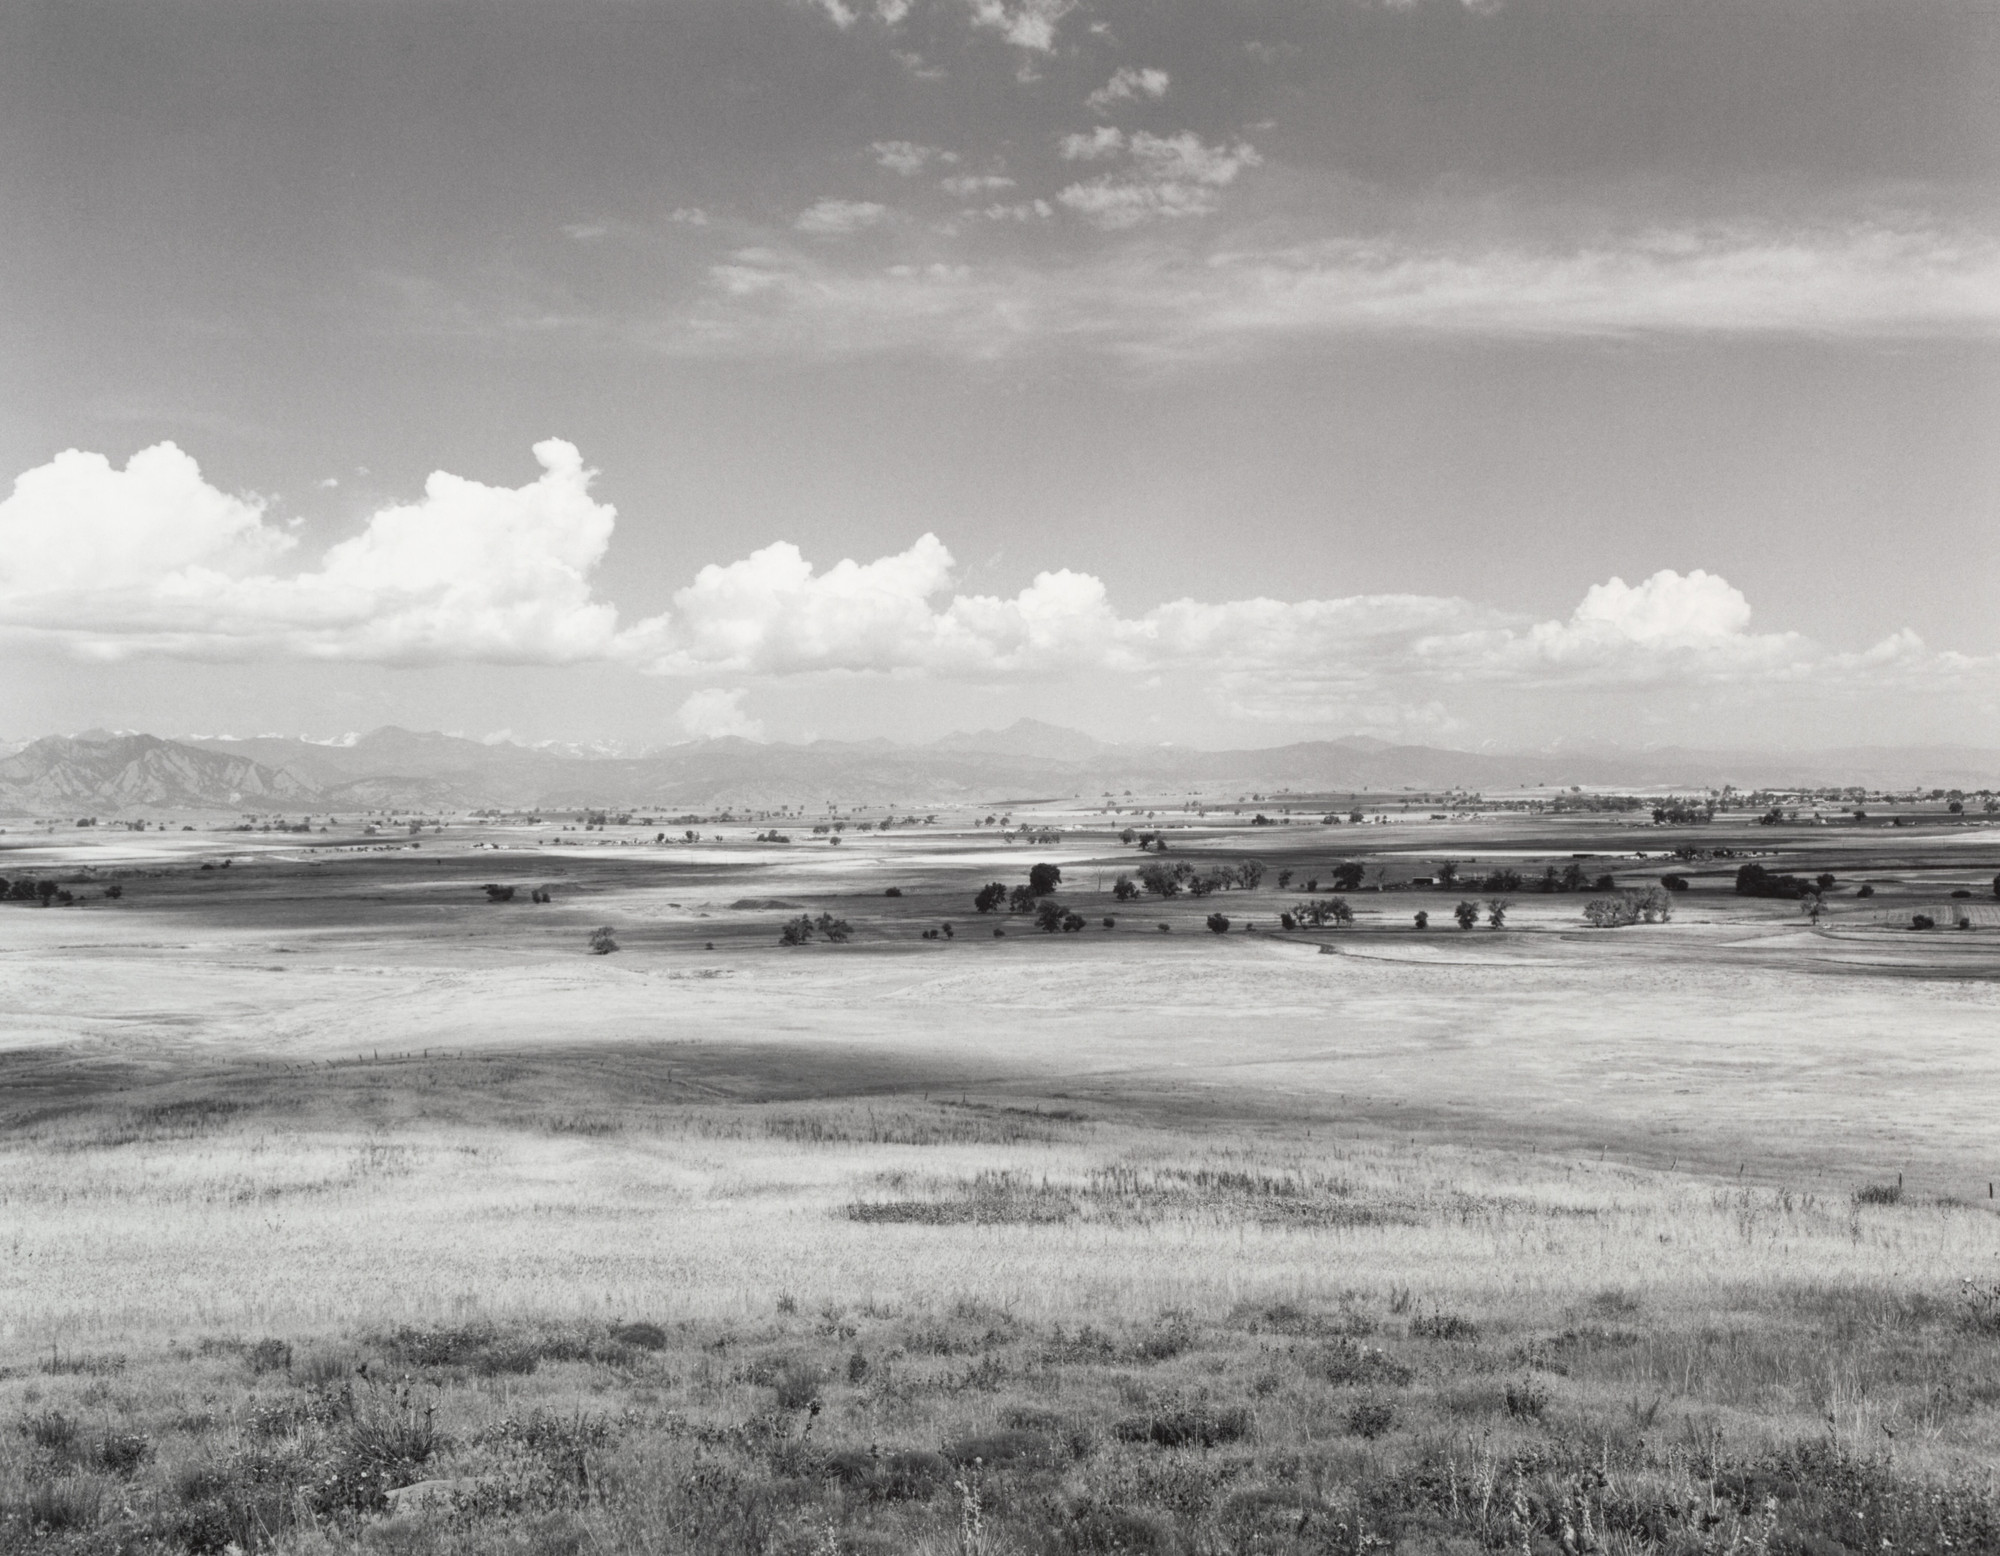 Robert Adams. North of Broomfield, Colorado. 1973